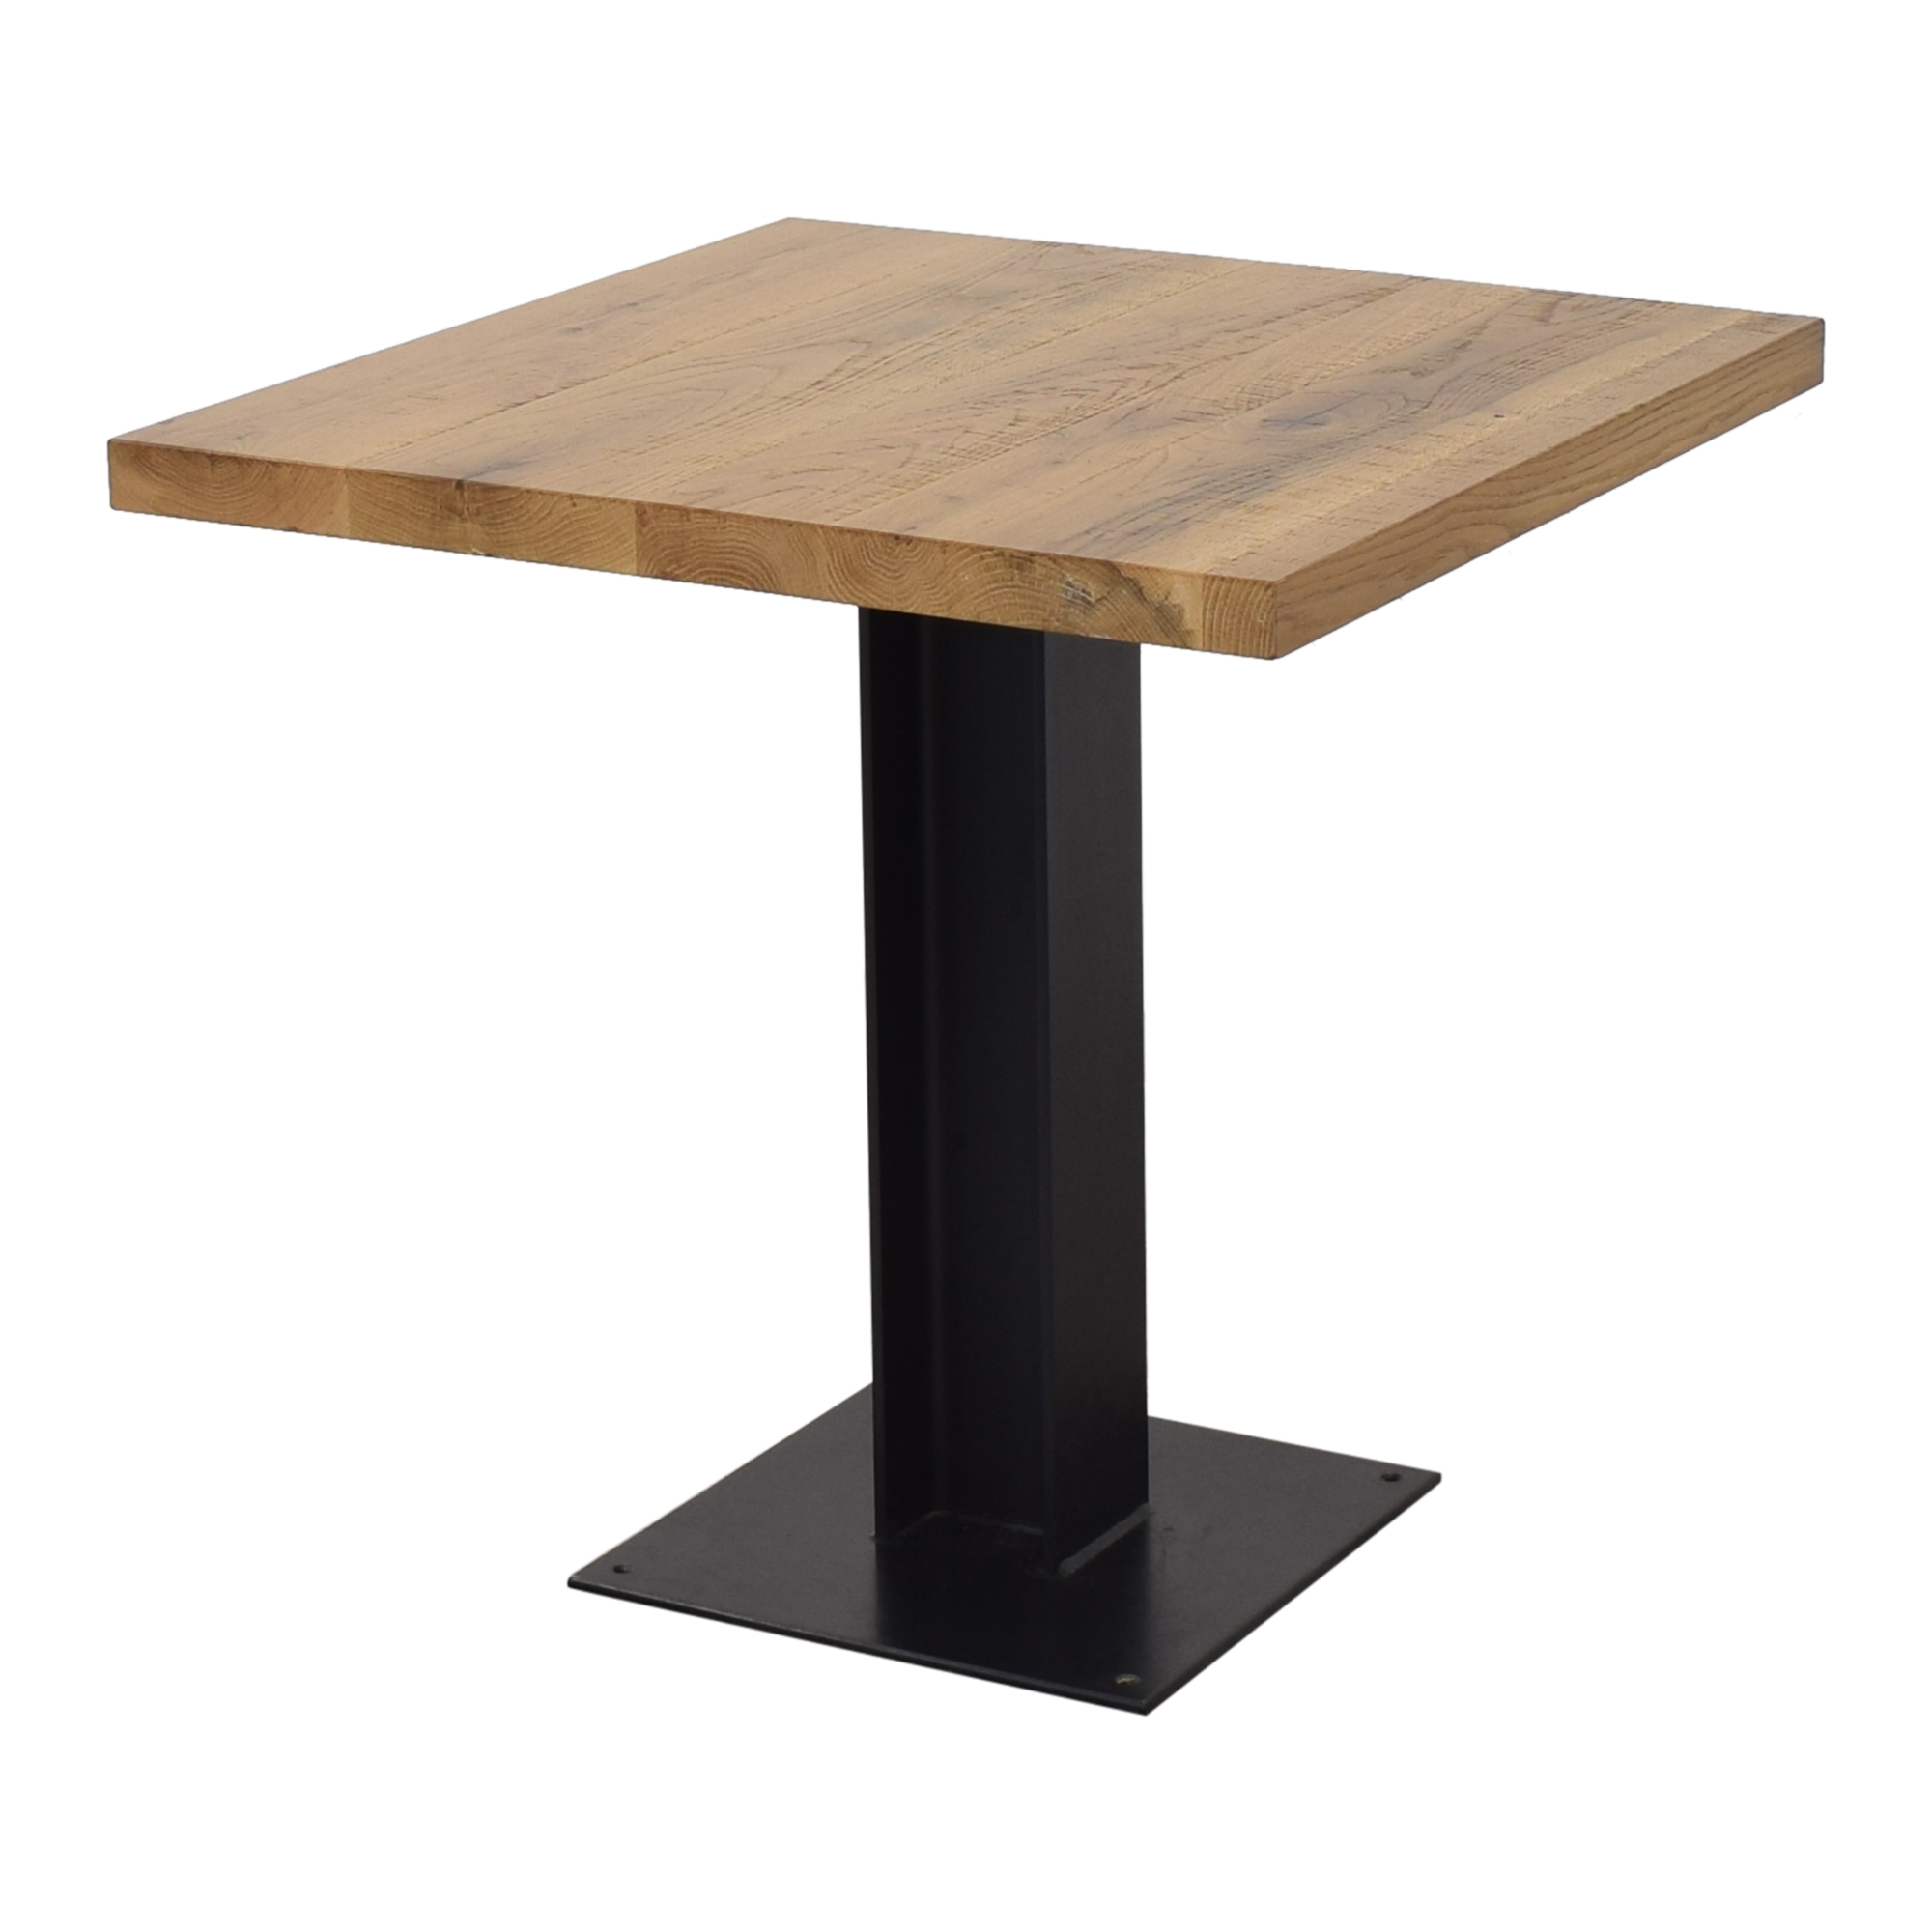 Crow Works Fixed I-Beam Square Table sale